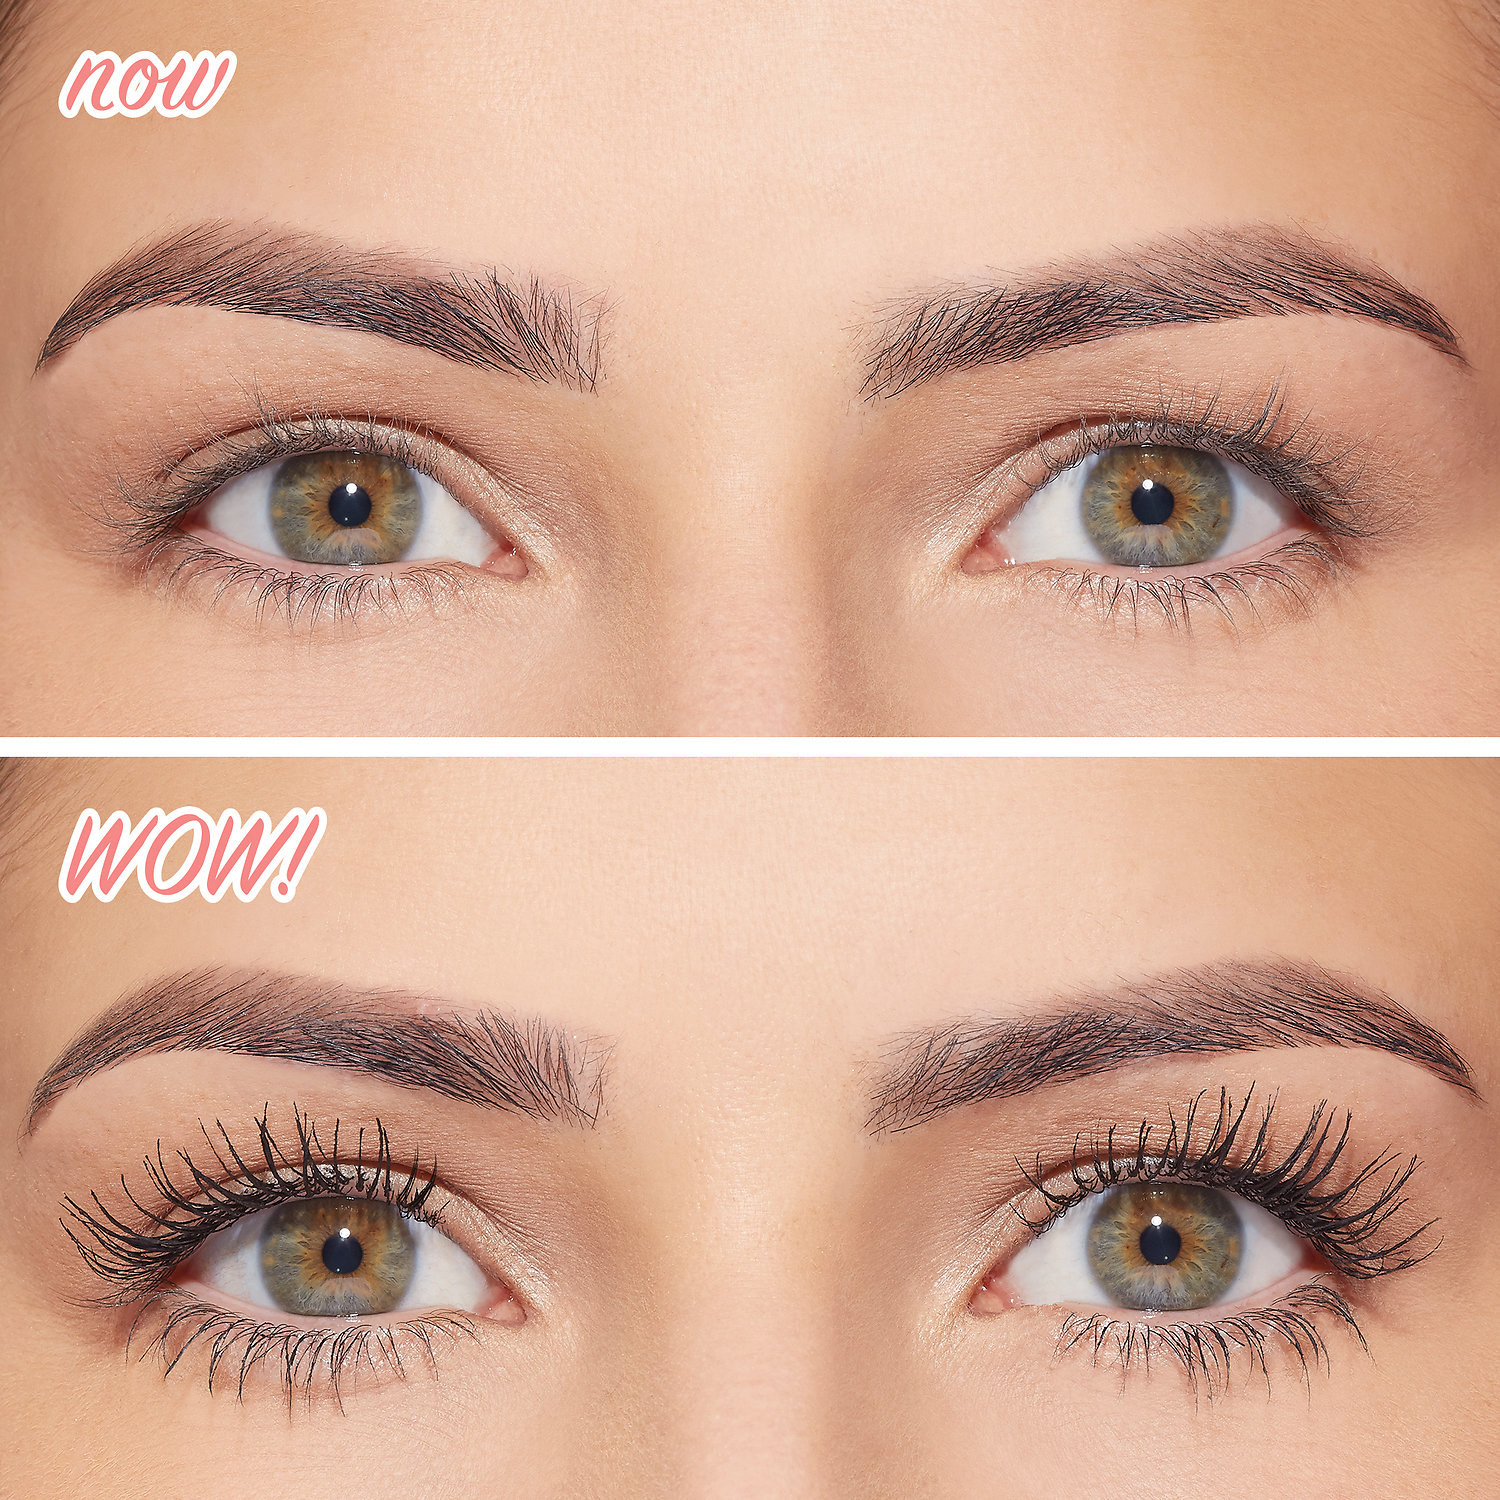 Before and after showing the lengthening effects after using the mascara